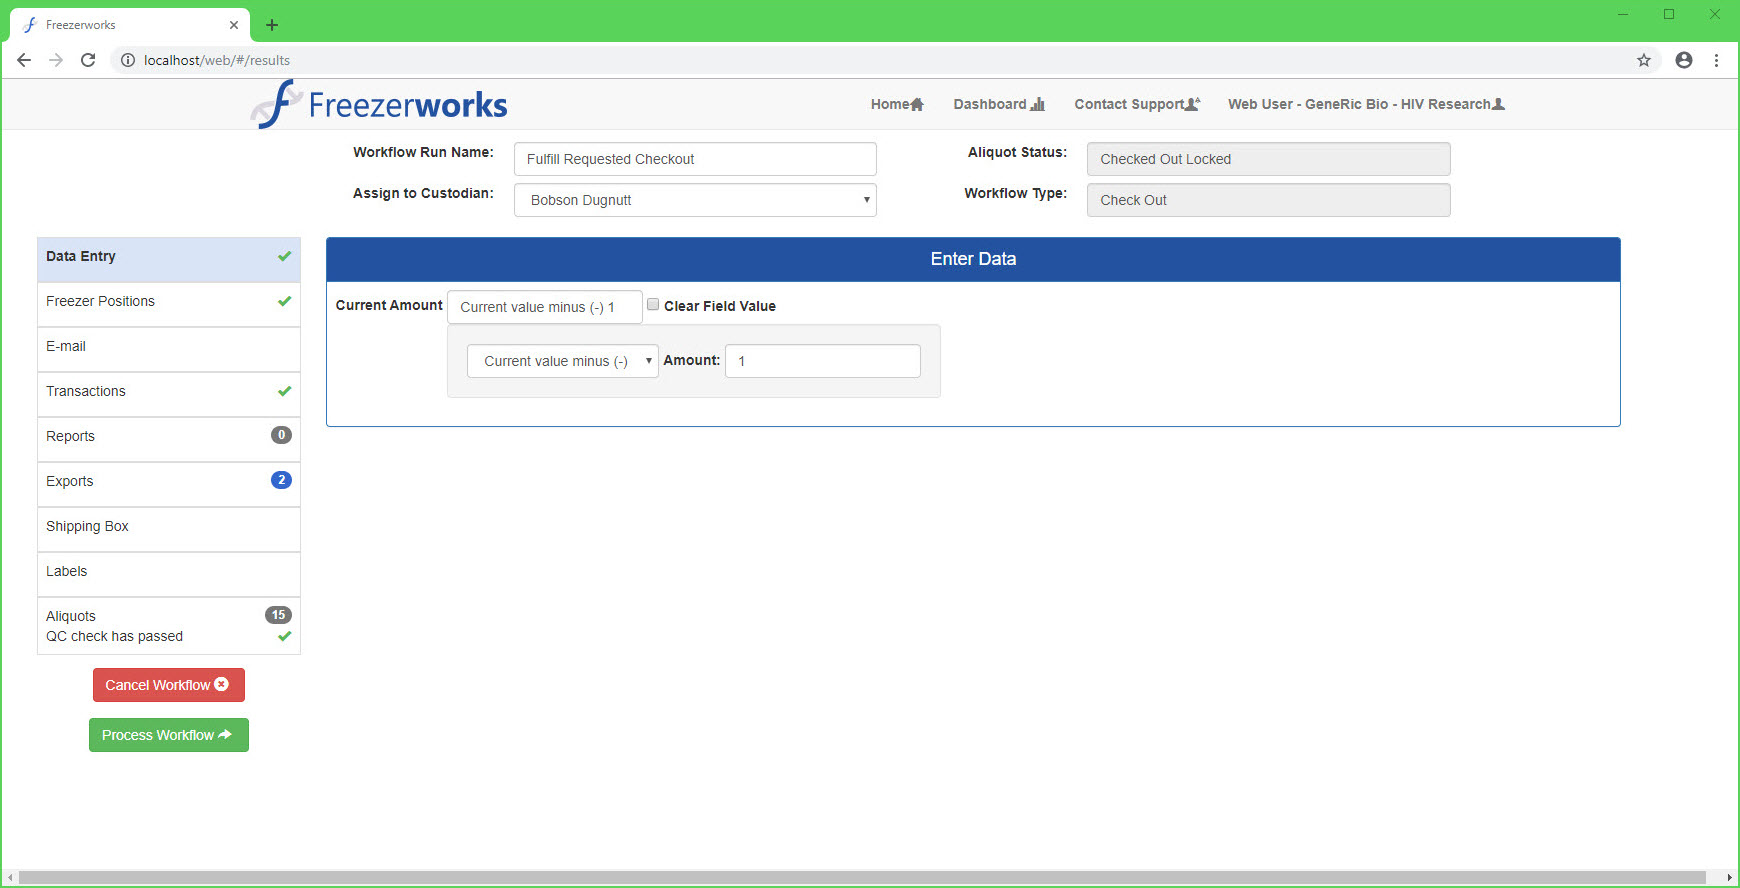 Laboratory Efficiency is increased with workflows processed using the Freezerworks Web Client